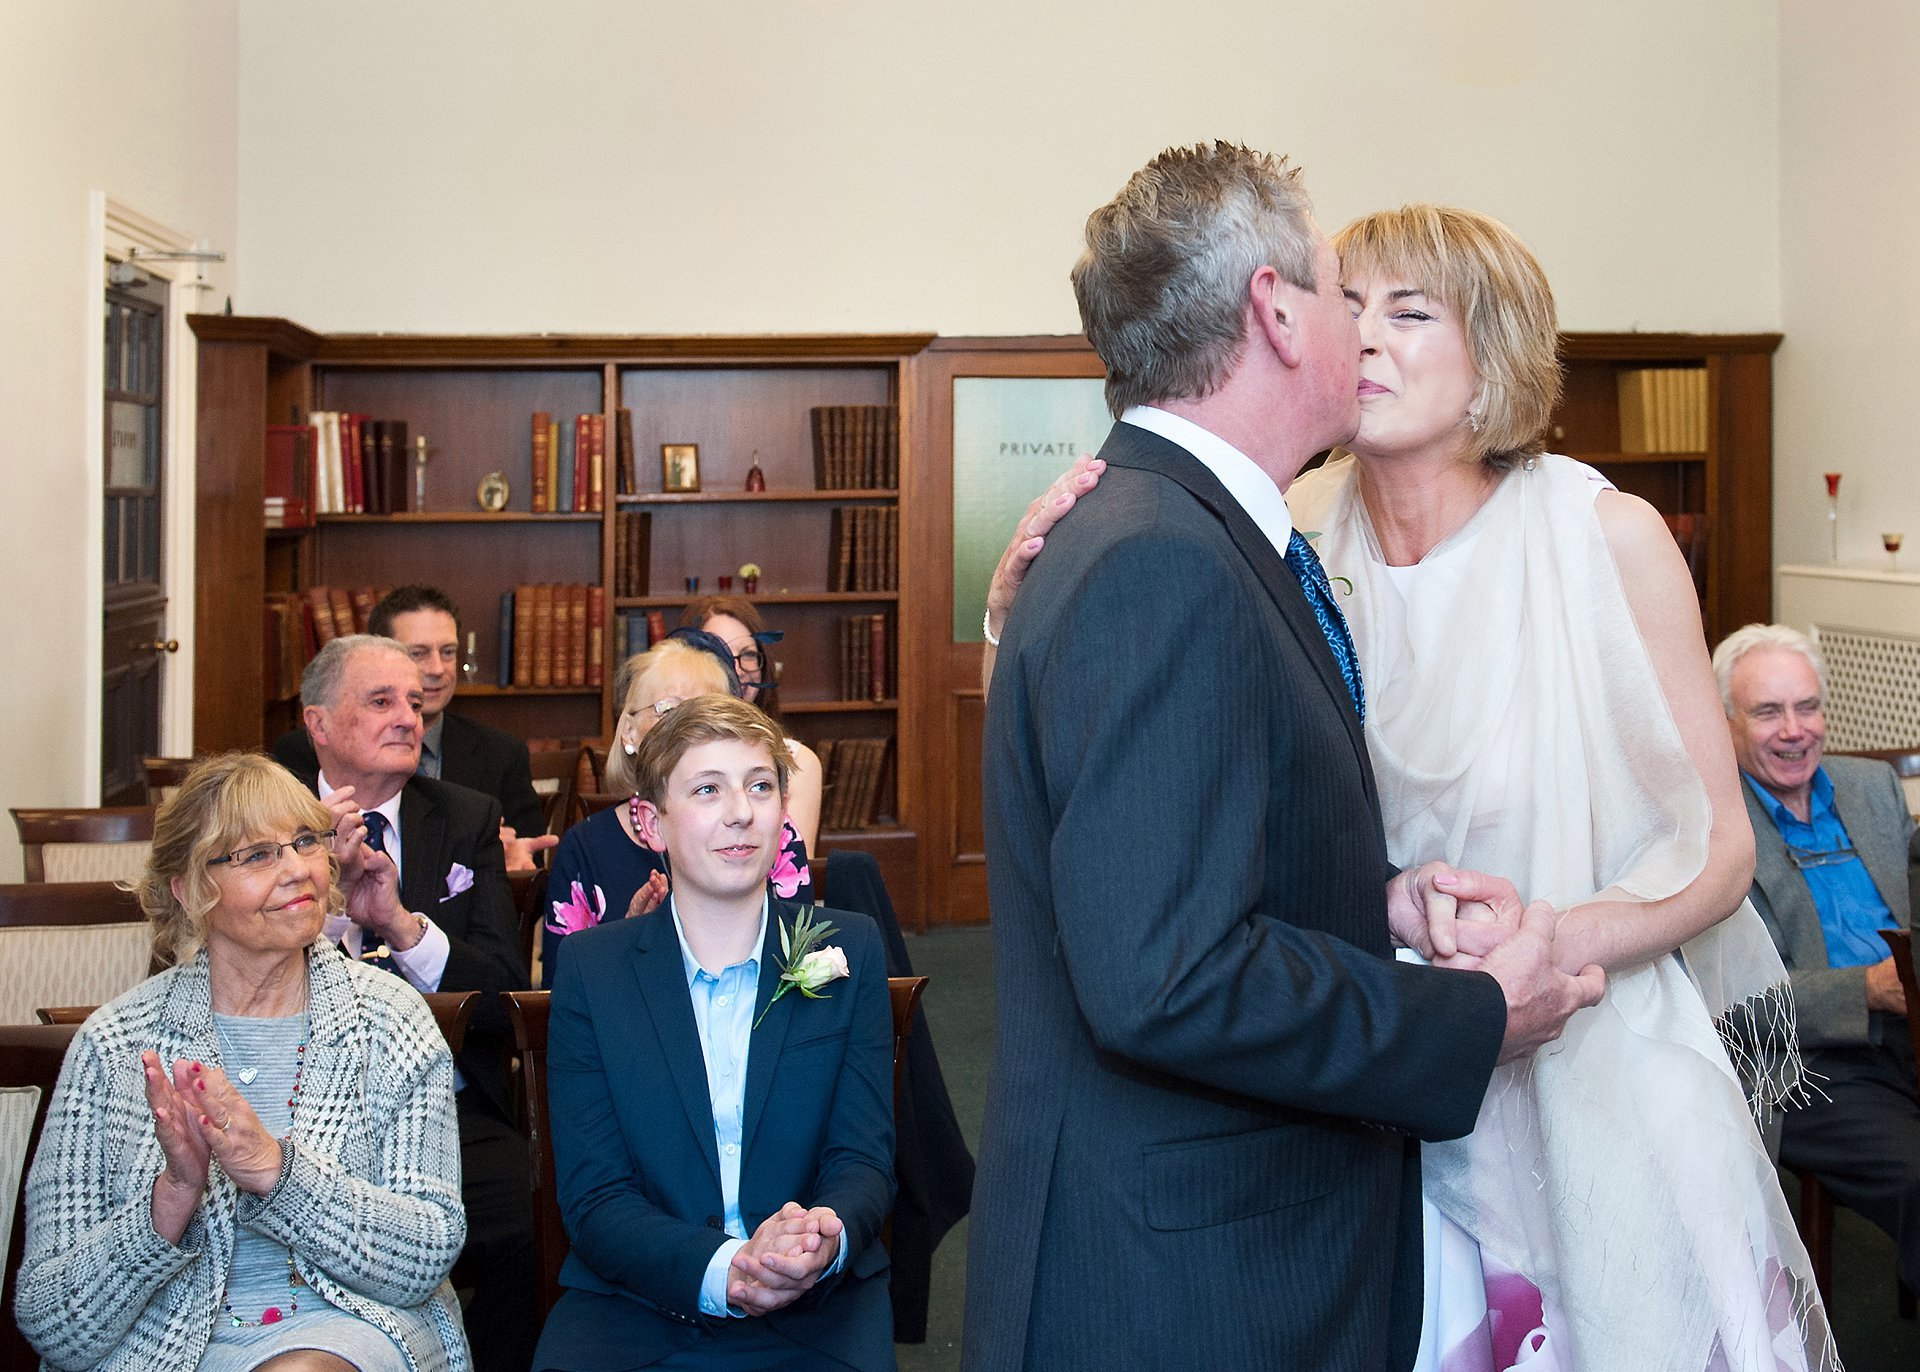 Sealed with a kiss - a civil marriage ceremony in London's Mayfair Library